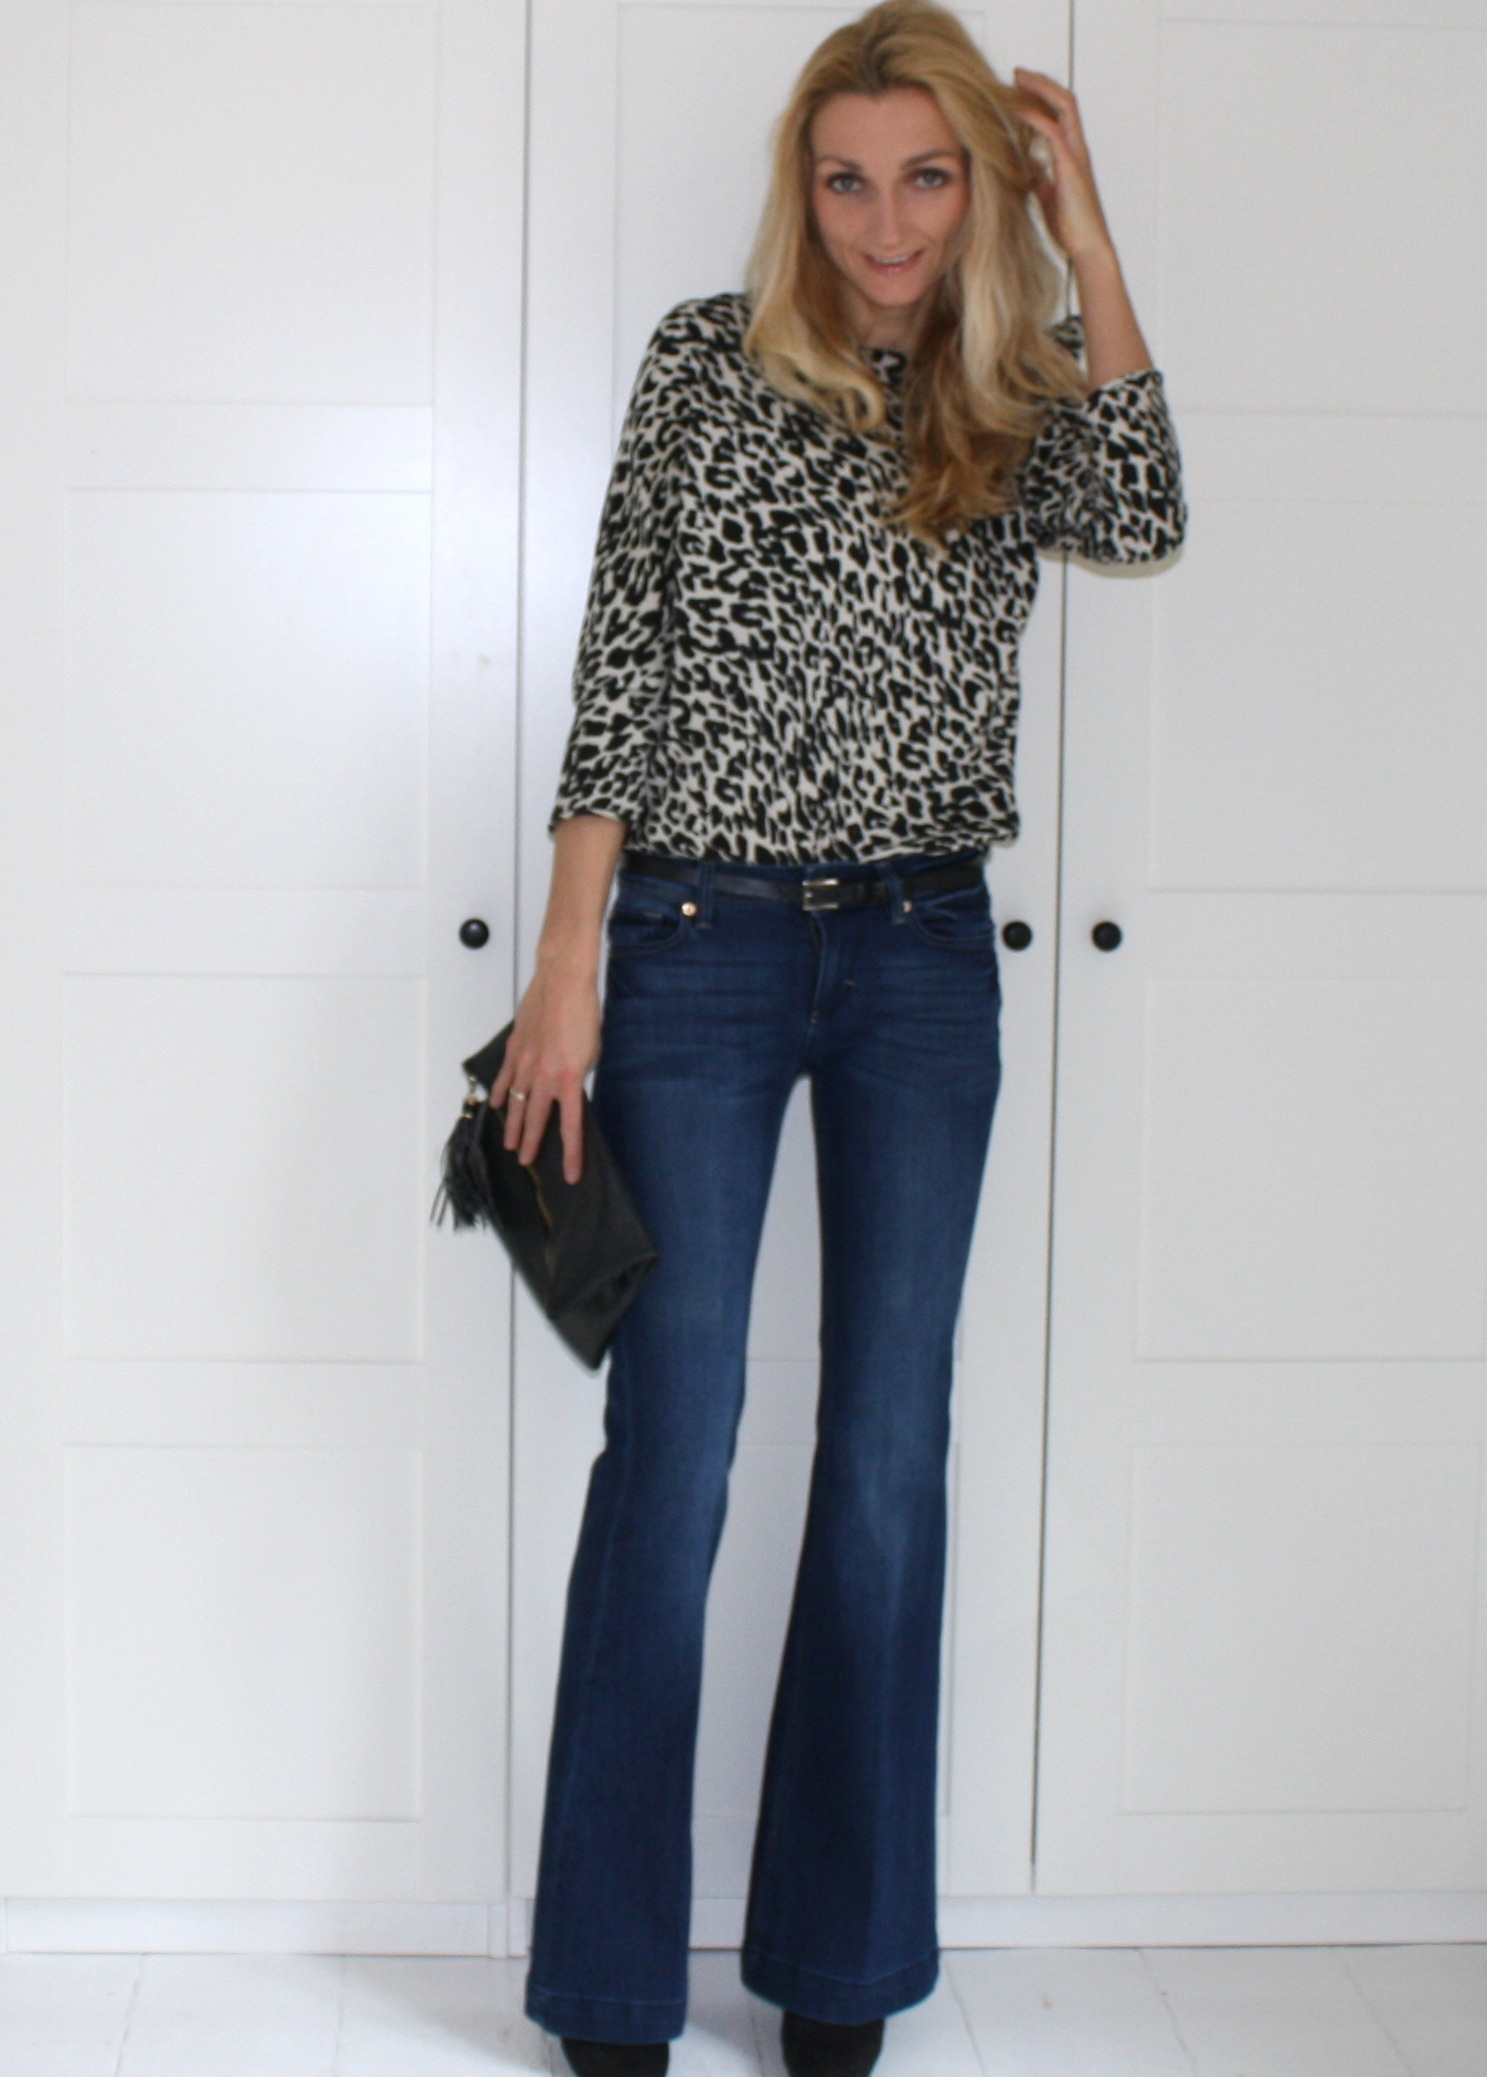 Flared jeans & leopard